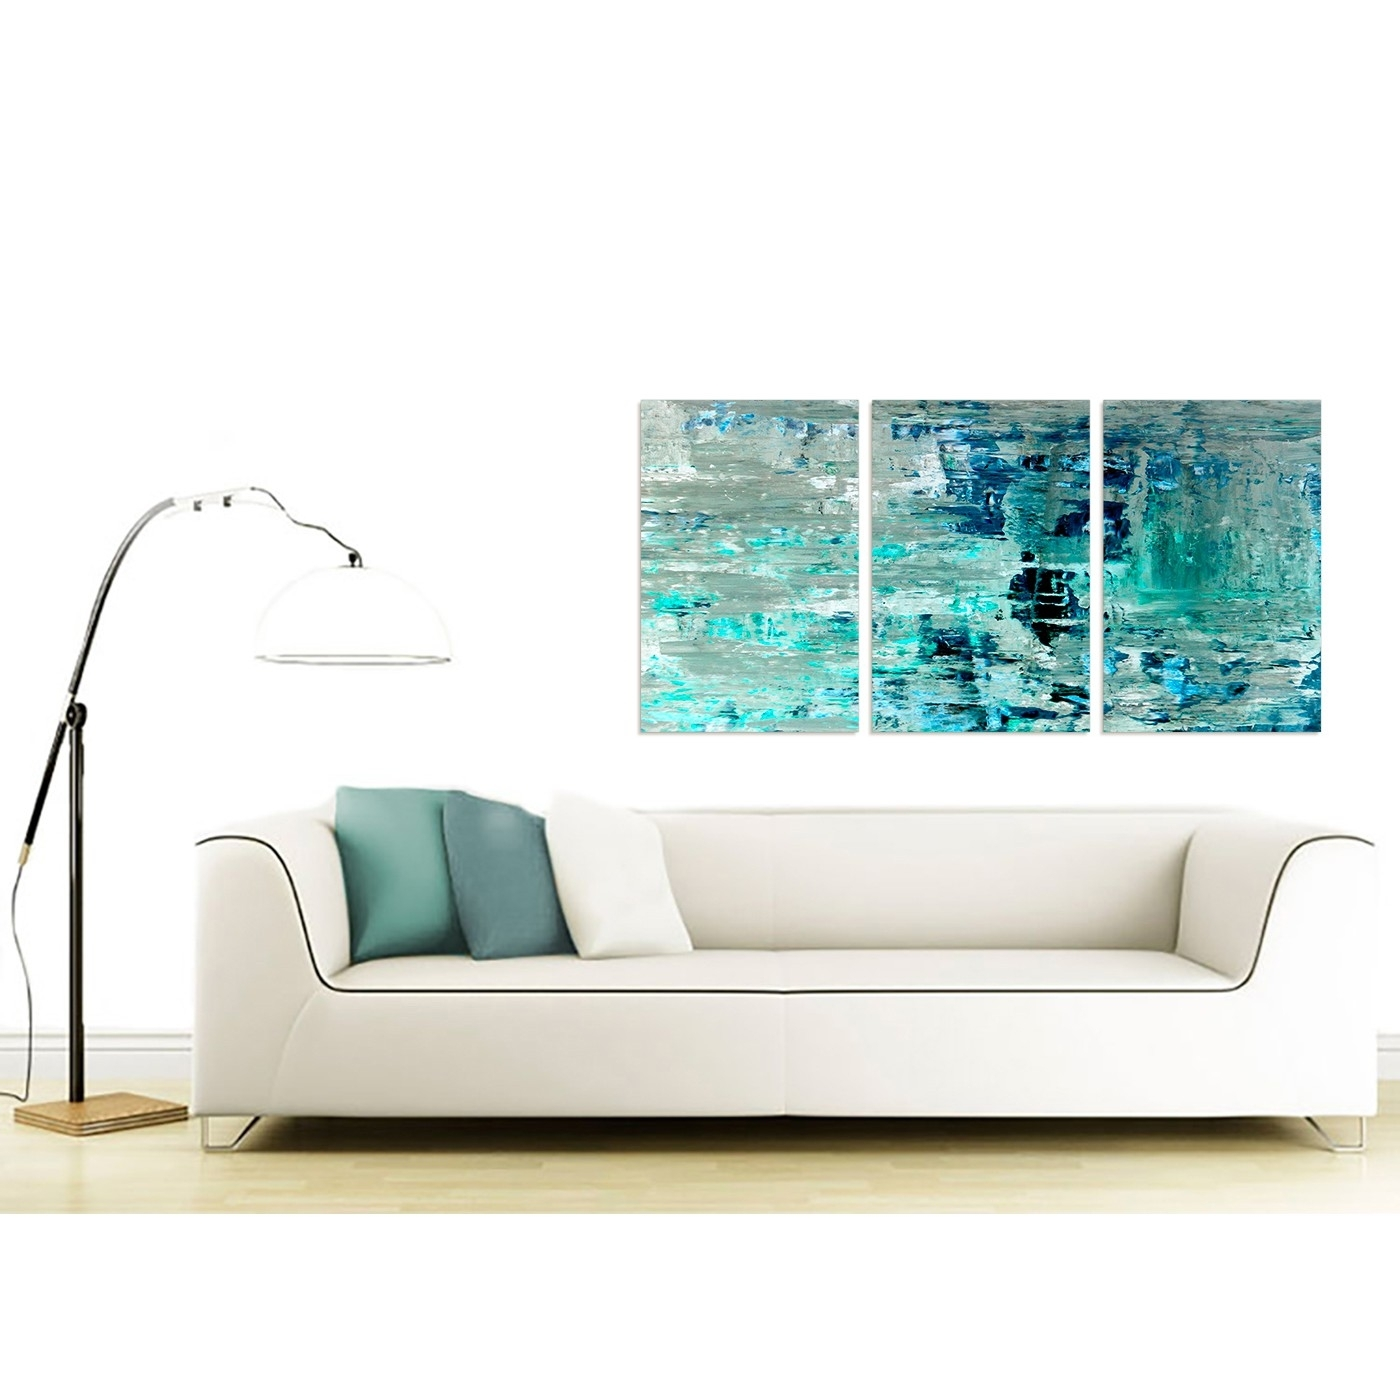 Turquoise Teal Abstract Painting Wall Art Print Canvas – Multi 3 Pertaining To Most Current Living Room Painting Wall Art (View 17 of 20)